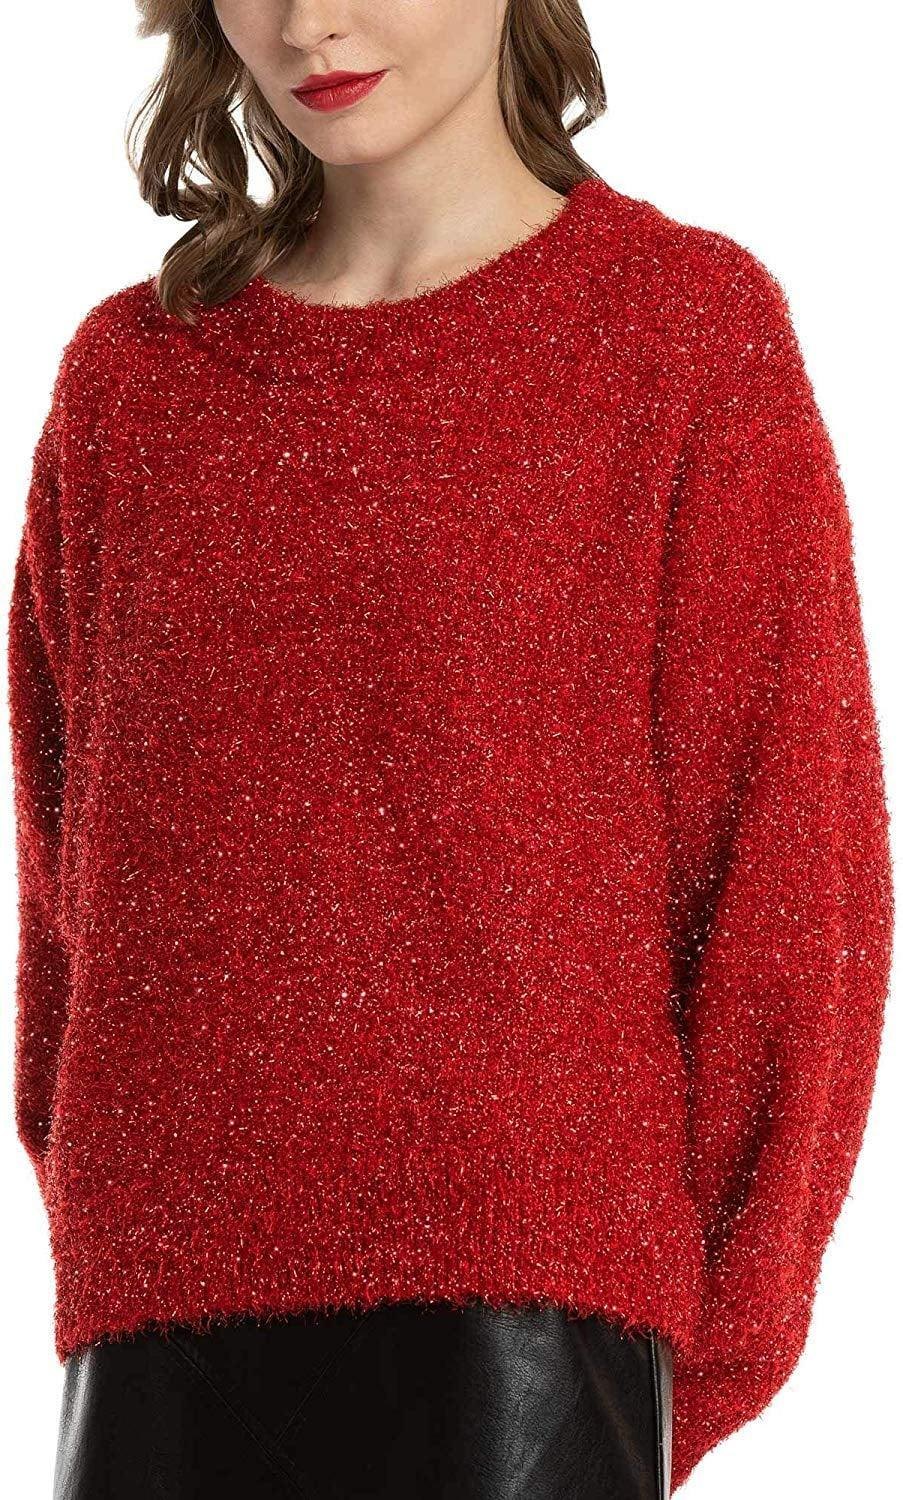 """<p>This <a href=""""https://www.popsugar.com/buy/MessBebe-Sparkle-Sweater-523521?p_name=MessBebe%20Sparkle%20Sweater&retailer=amazon.com&pid=523521&price=35&evar1=fab%3Auk&evar9=46947746&evar98=https%3A%2F%2Fwww.popsugar.com%2Ffashion%2Fphoto-gallery%2F46947746%2Fimage%2F46949324%2FMessBebe-Sparkle-Sweater&list1=shopping%2Camazon%2Choliday%2Choliday%20fashion%2Cfashion%20shopping&prop13=api&pdata=1"""" rel=""""nofollow noopener"""" class=""""link rapid-noclick-resp"""" target=""""_blank"""" data-ylk=""""slk:MessBebe Sparkle Sweater"""">MessBebe Sparkle Sweater </a> ($35) is cozy but fun.</p>"""